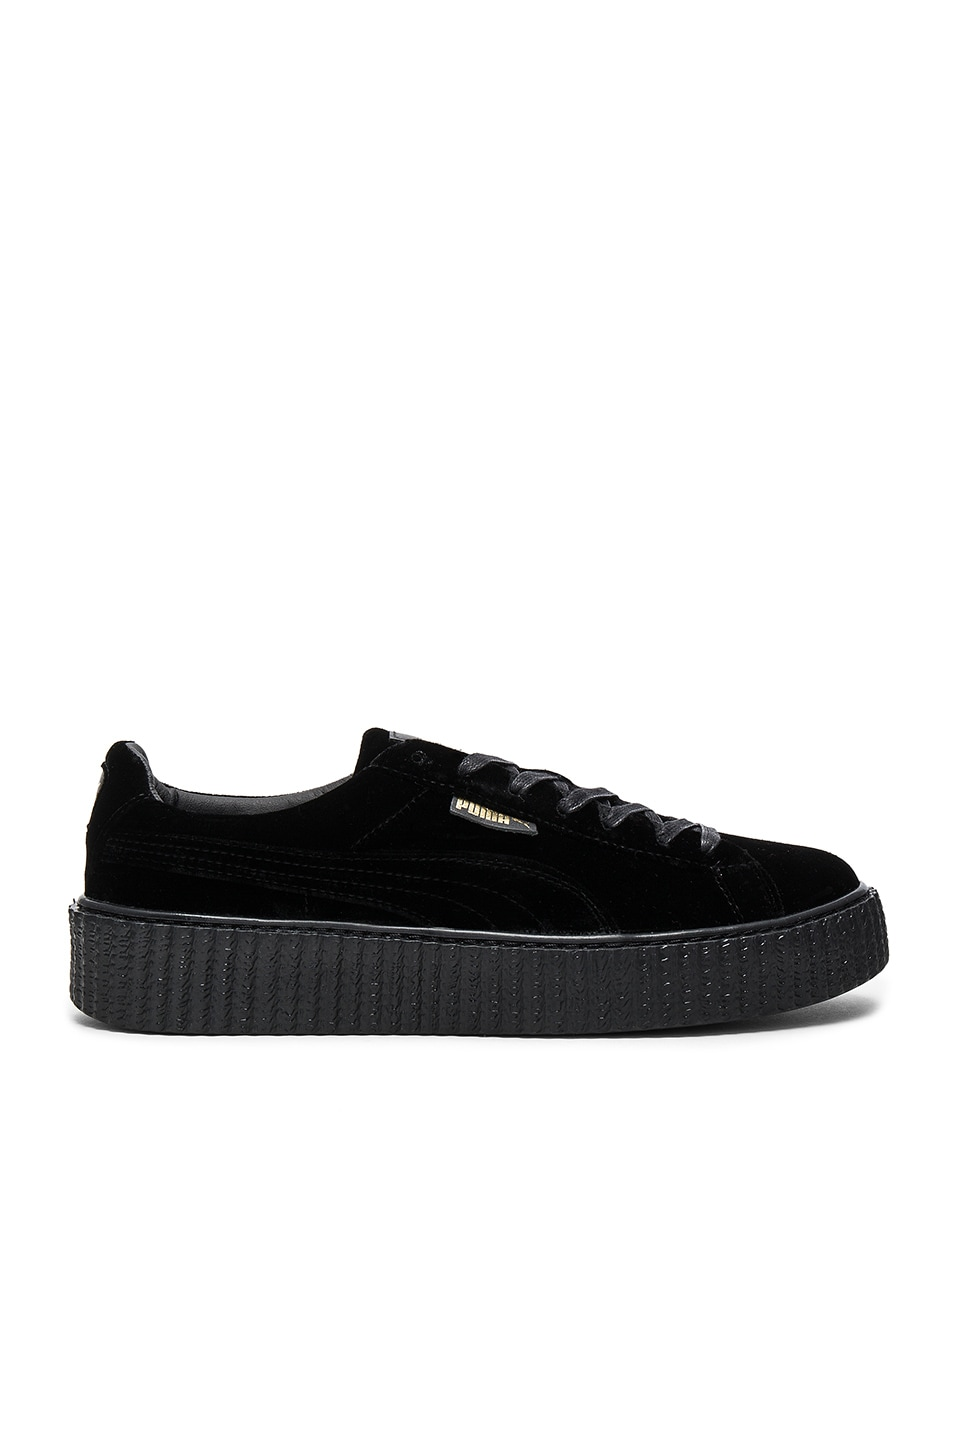 Fenty by Puma Velvet Creepers in Puma Black